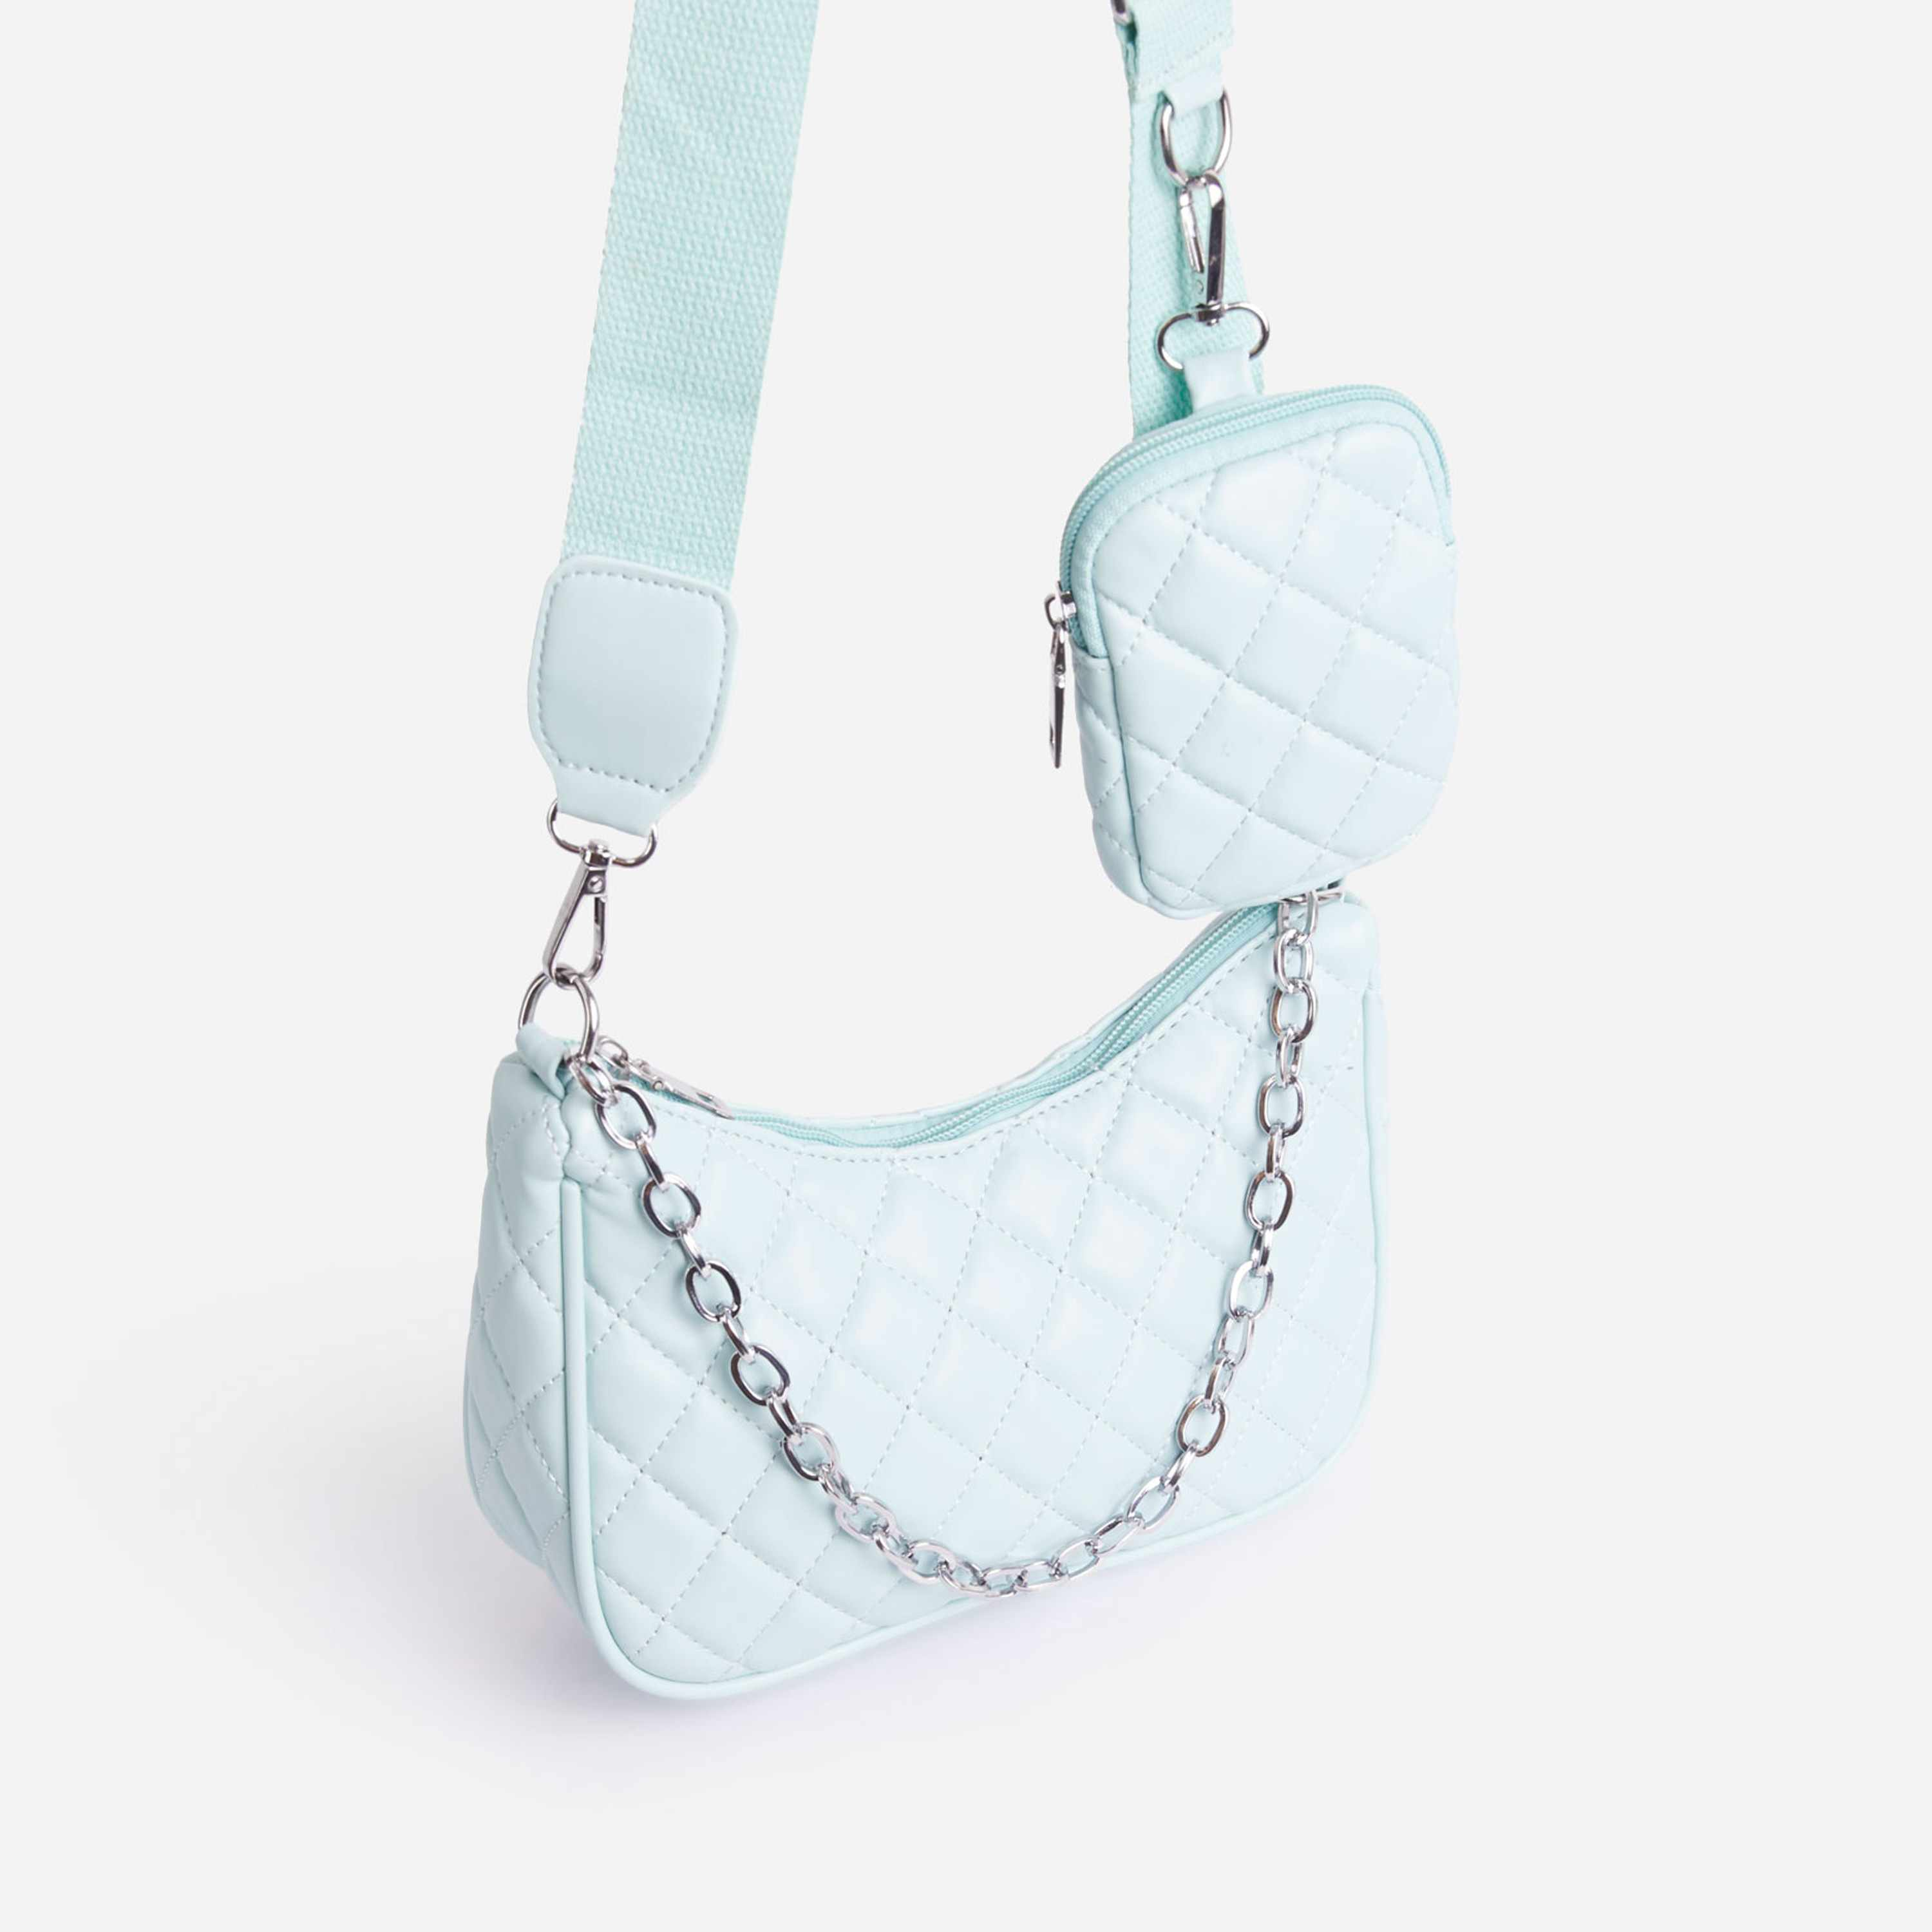 Rogan Purse Detail Quilted Cross Body Bag In Blue Faux Leather